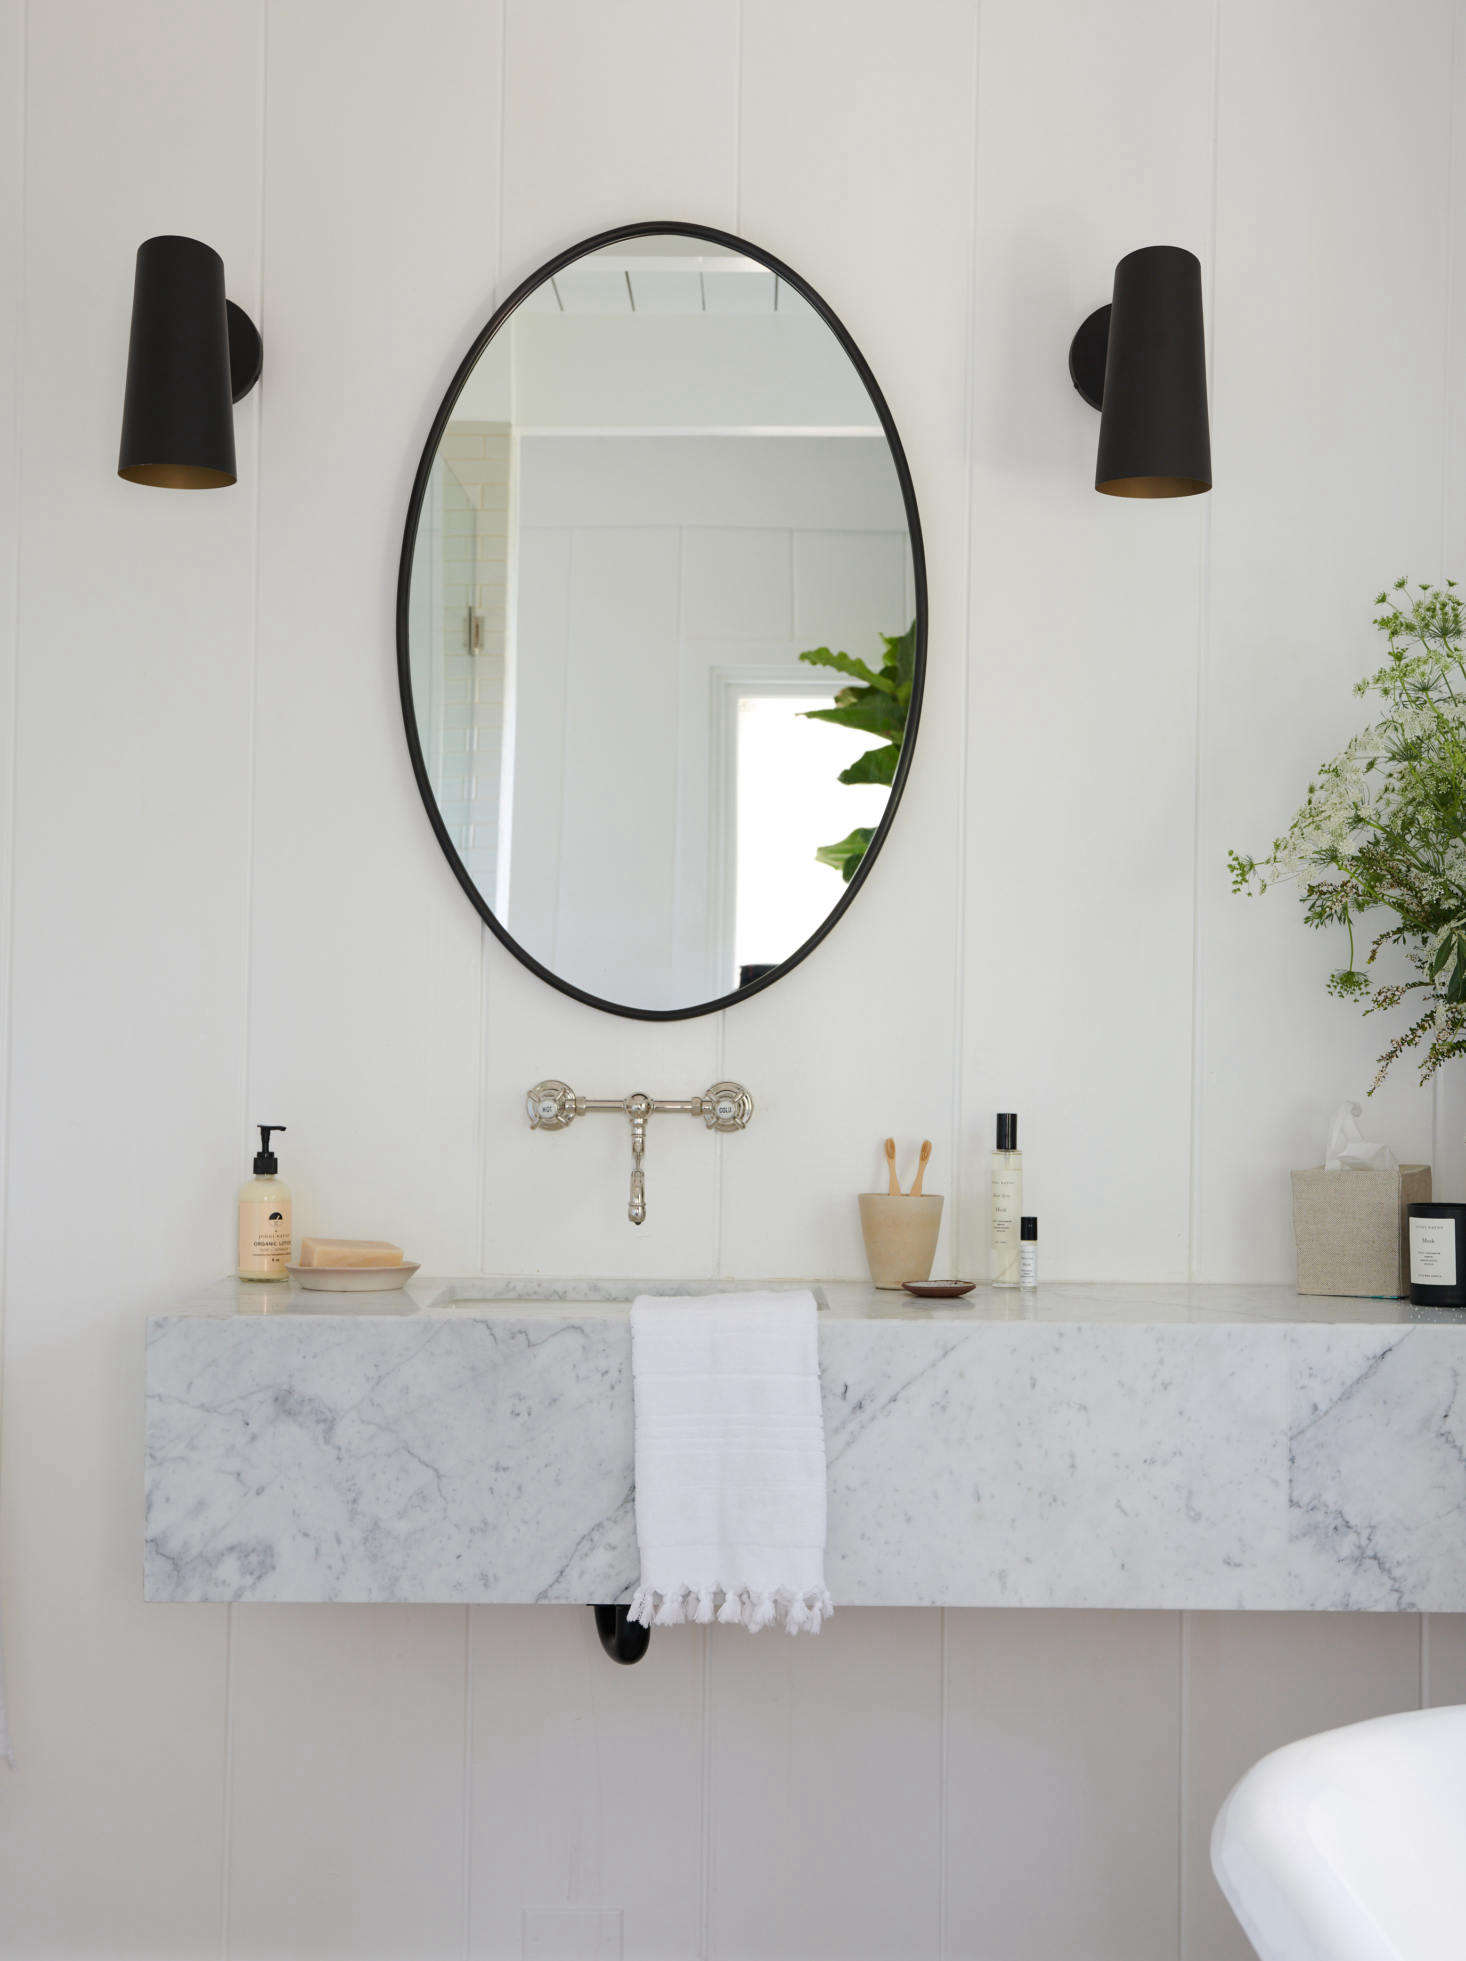 In one of the bathrooms, a slab of marble left over from the kitchen counters was re-fitted into a sink.